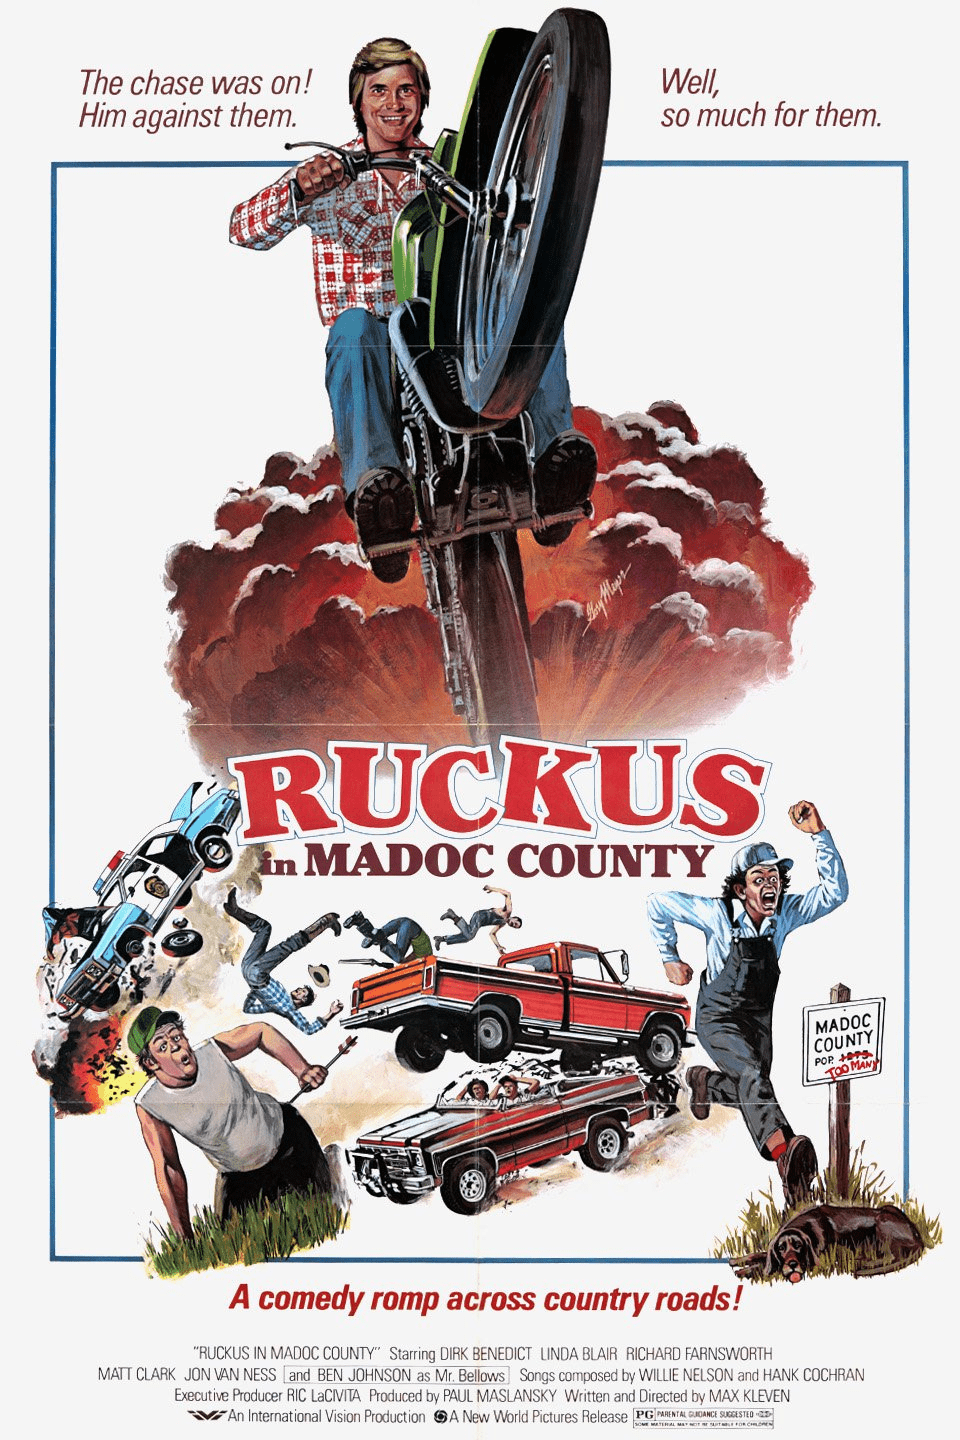 Ruckus 1980 on DVD